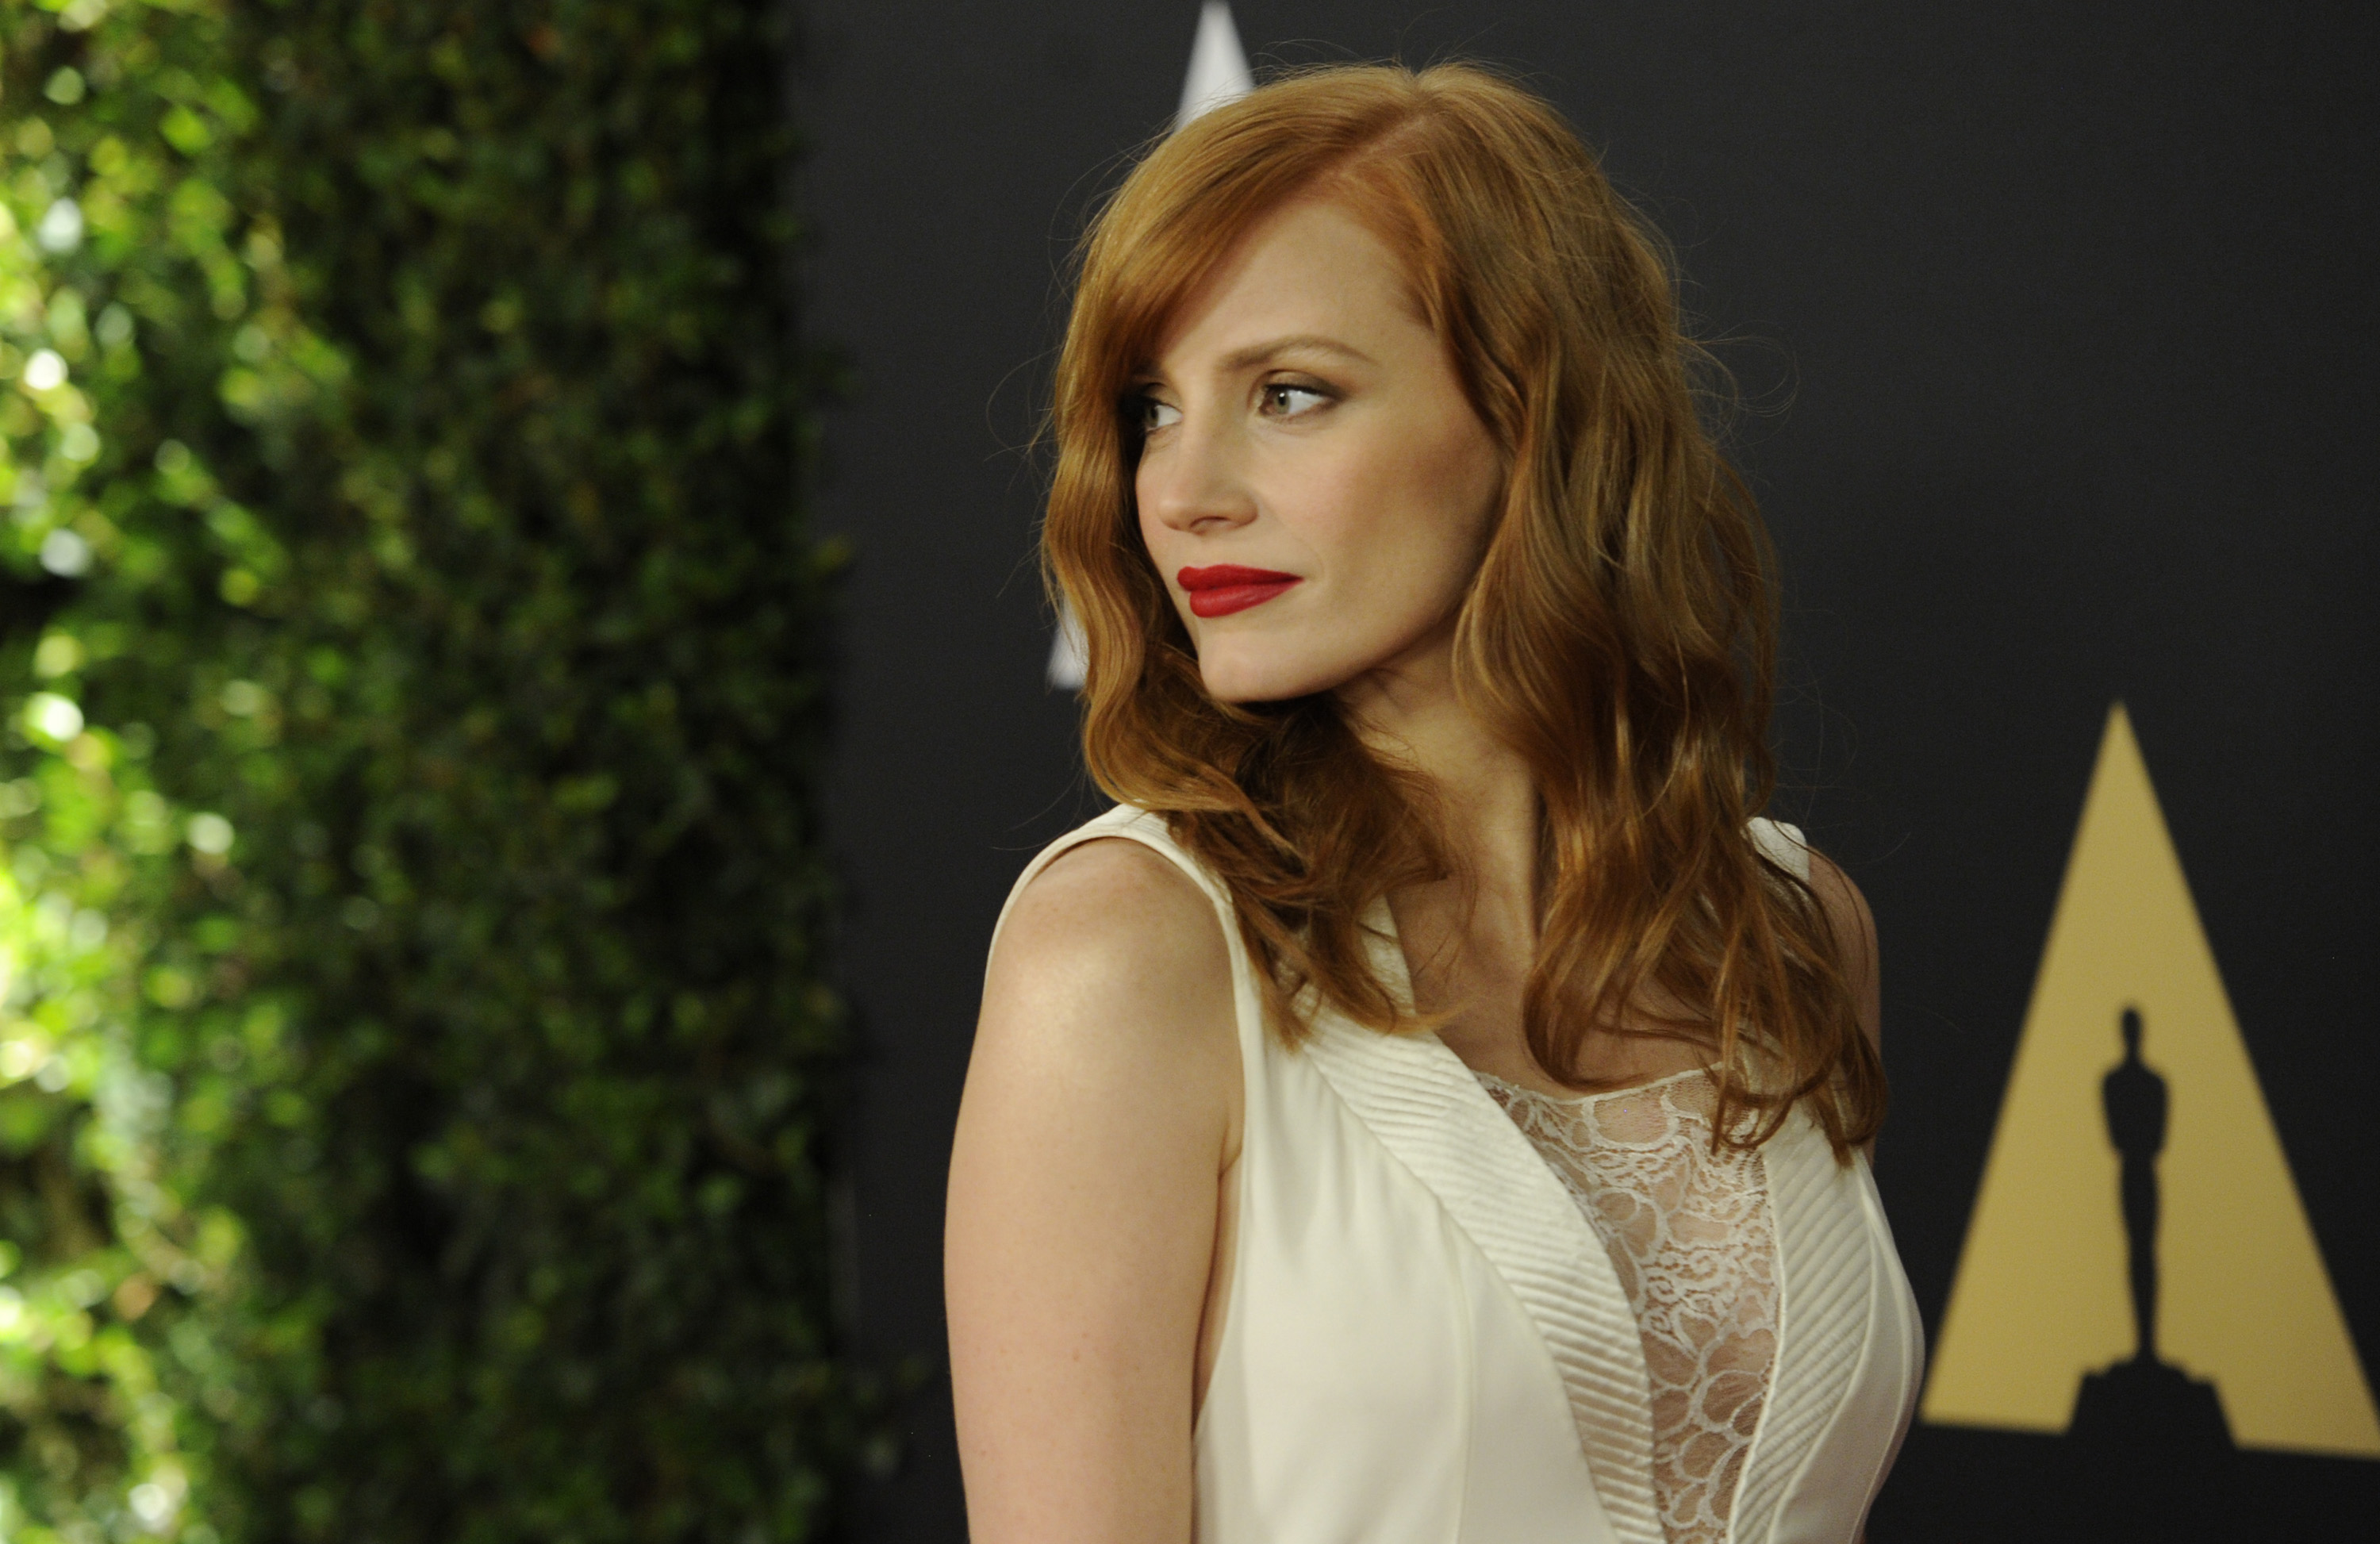 Jessica Chastain arrives at the 6th annual Governors Awards at the Hollywood and Highland Center on Saturday, Nov. 8, 2014 in Los Angeles. (Photo by Chris Pizzello/Invision/AP)